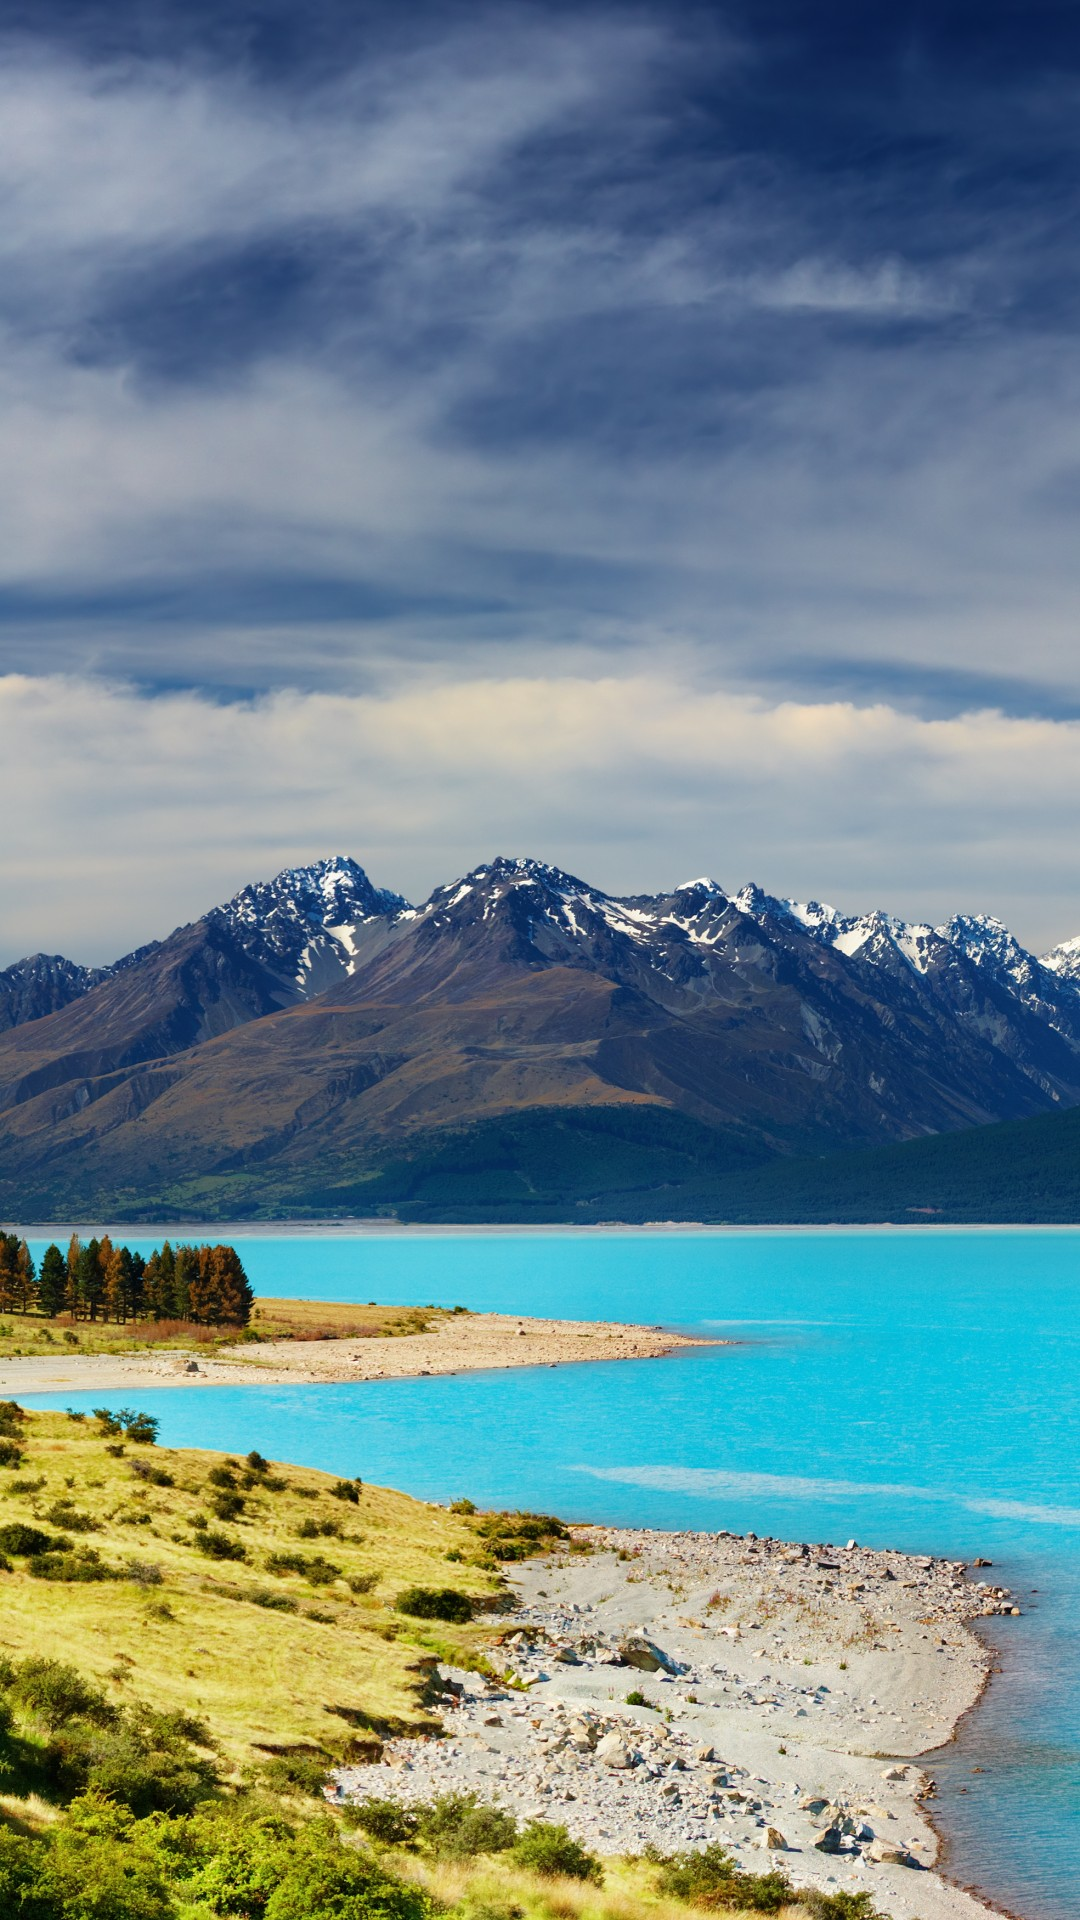 Best Quotes Wallpapers Hd Wallpaper New Zealand River Mountains 5k Nature 16207